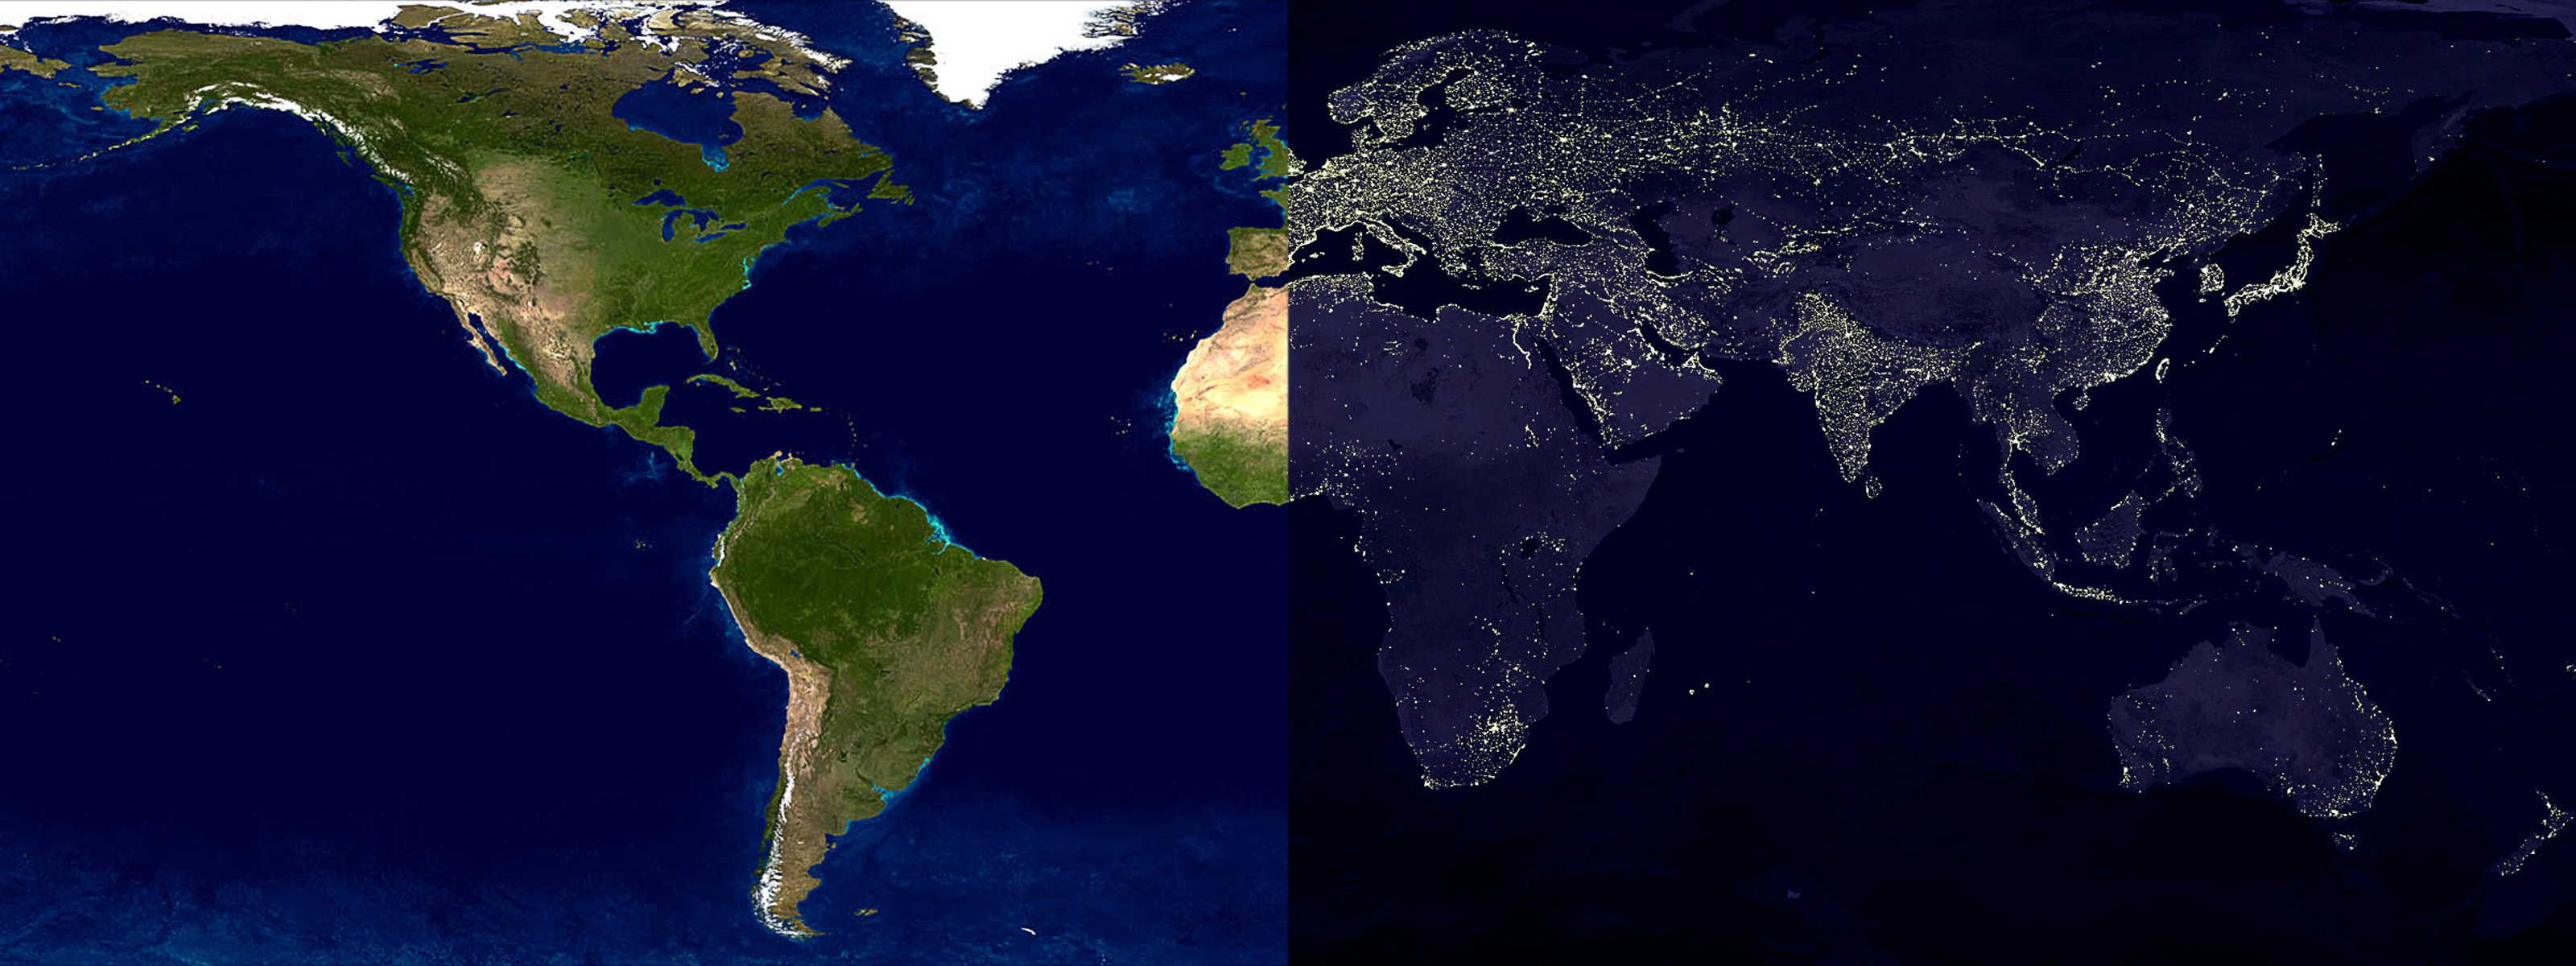 Diagram Album Day And Night World Map Wallpaper - Millions ...